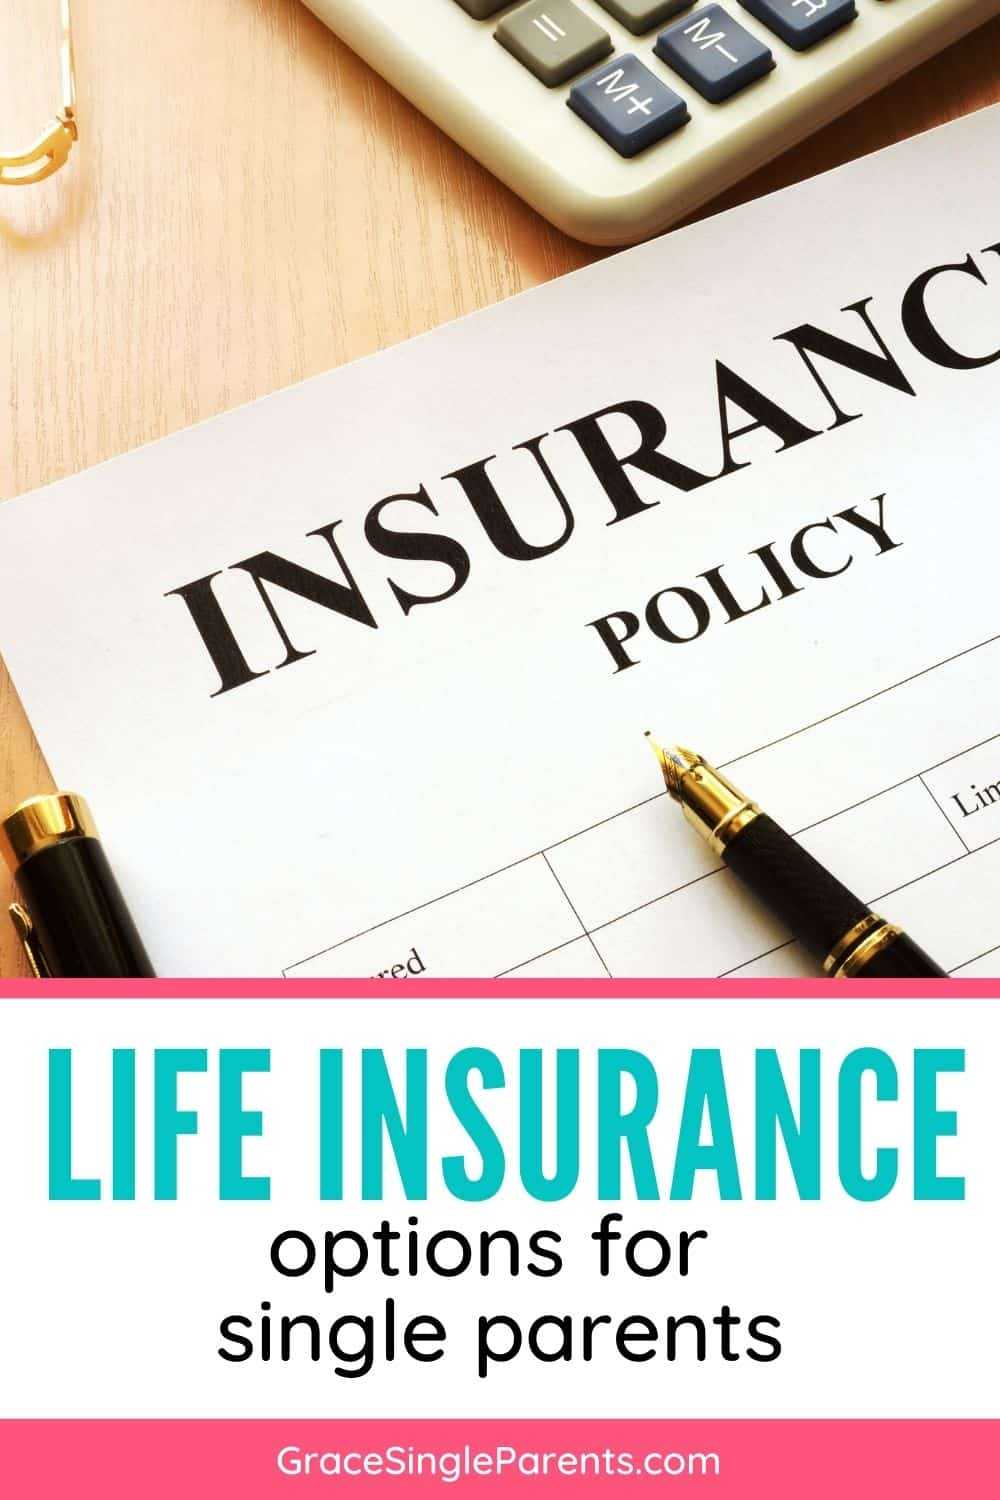 Life Insurance for Single Parents: Where To Start